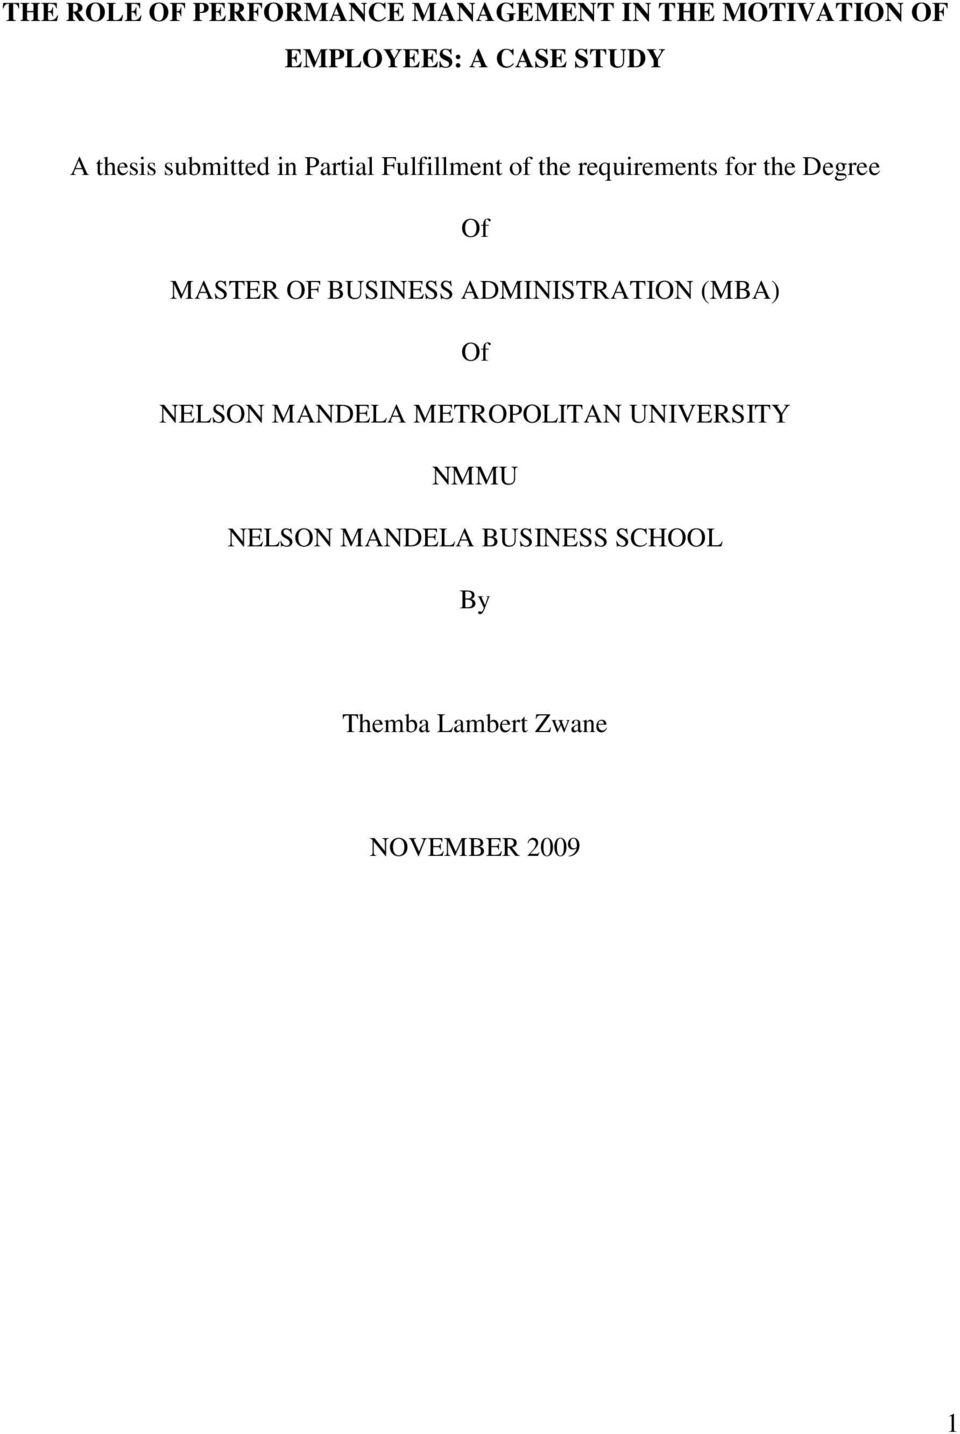 literature review on motivation of employees